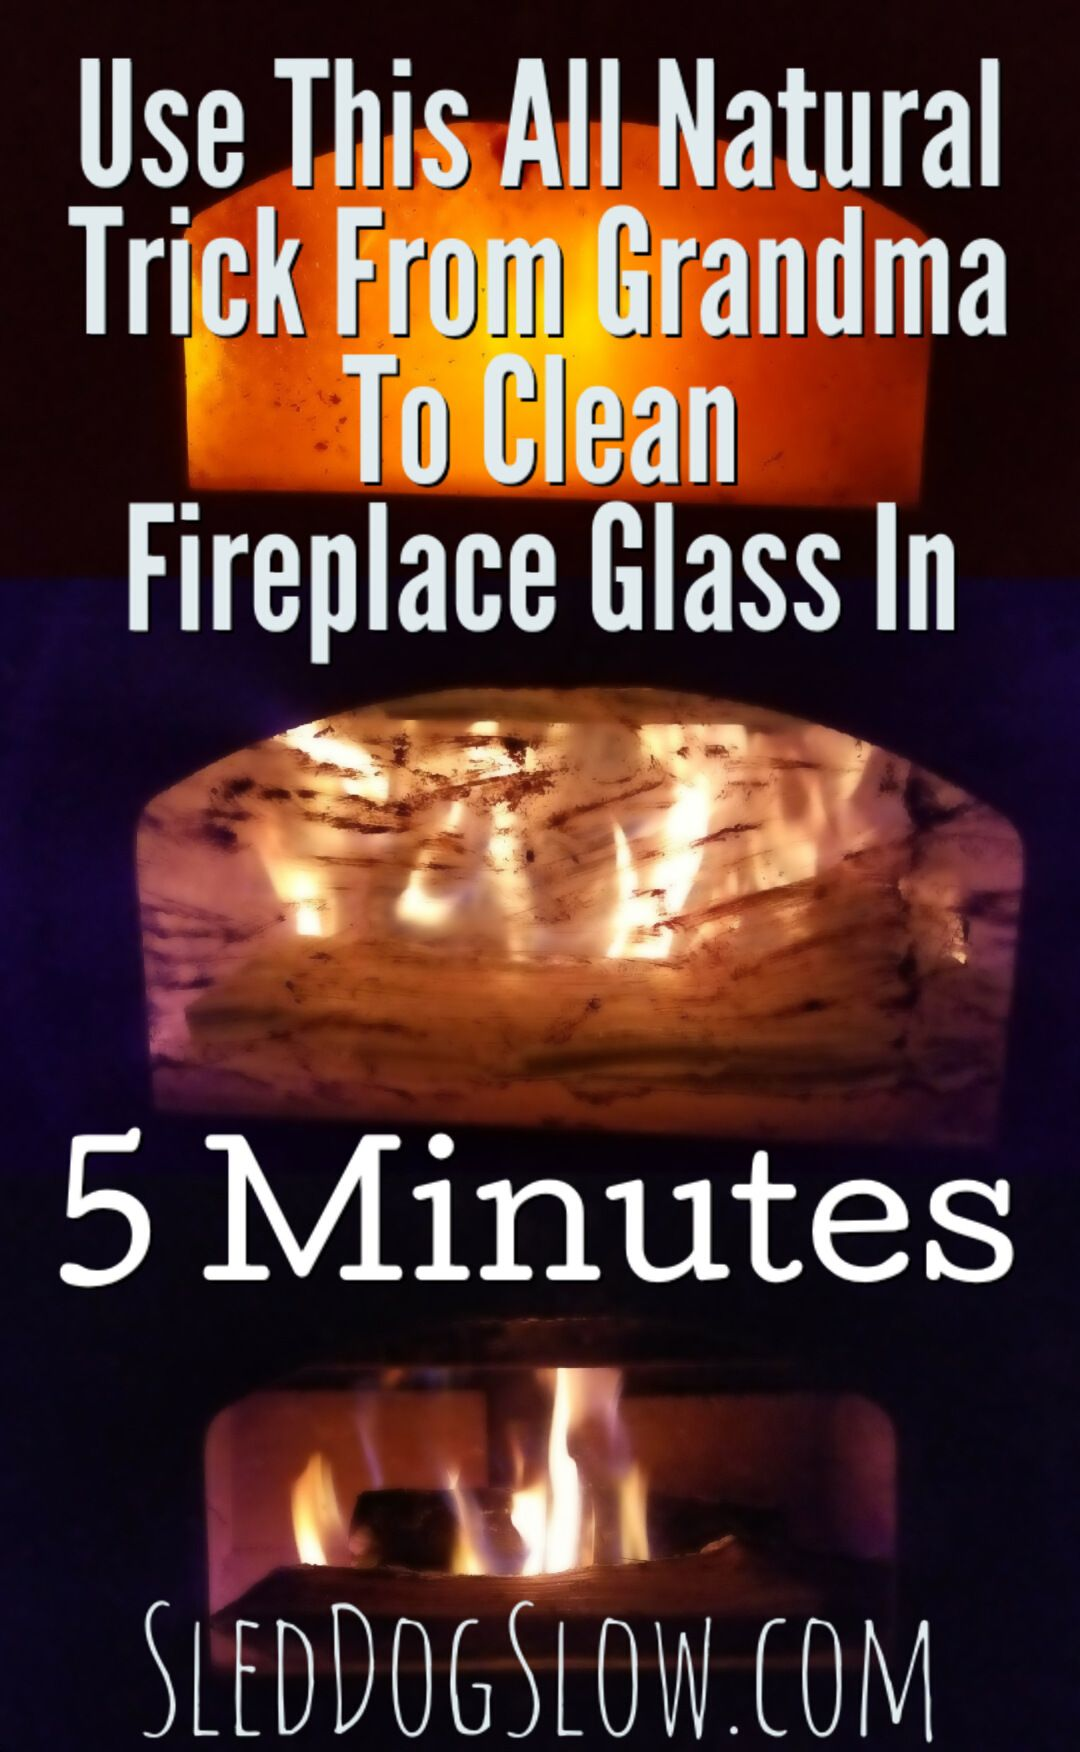 Use This All Natural Trick From Grandma To Clean Fireplace Glass